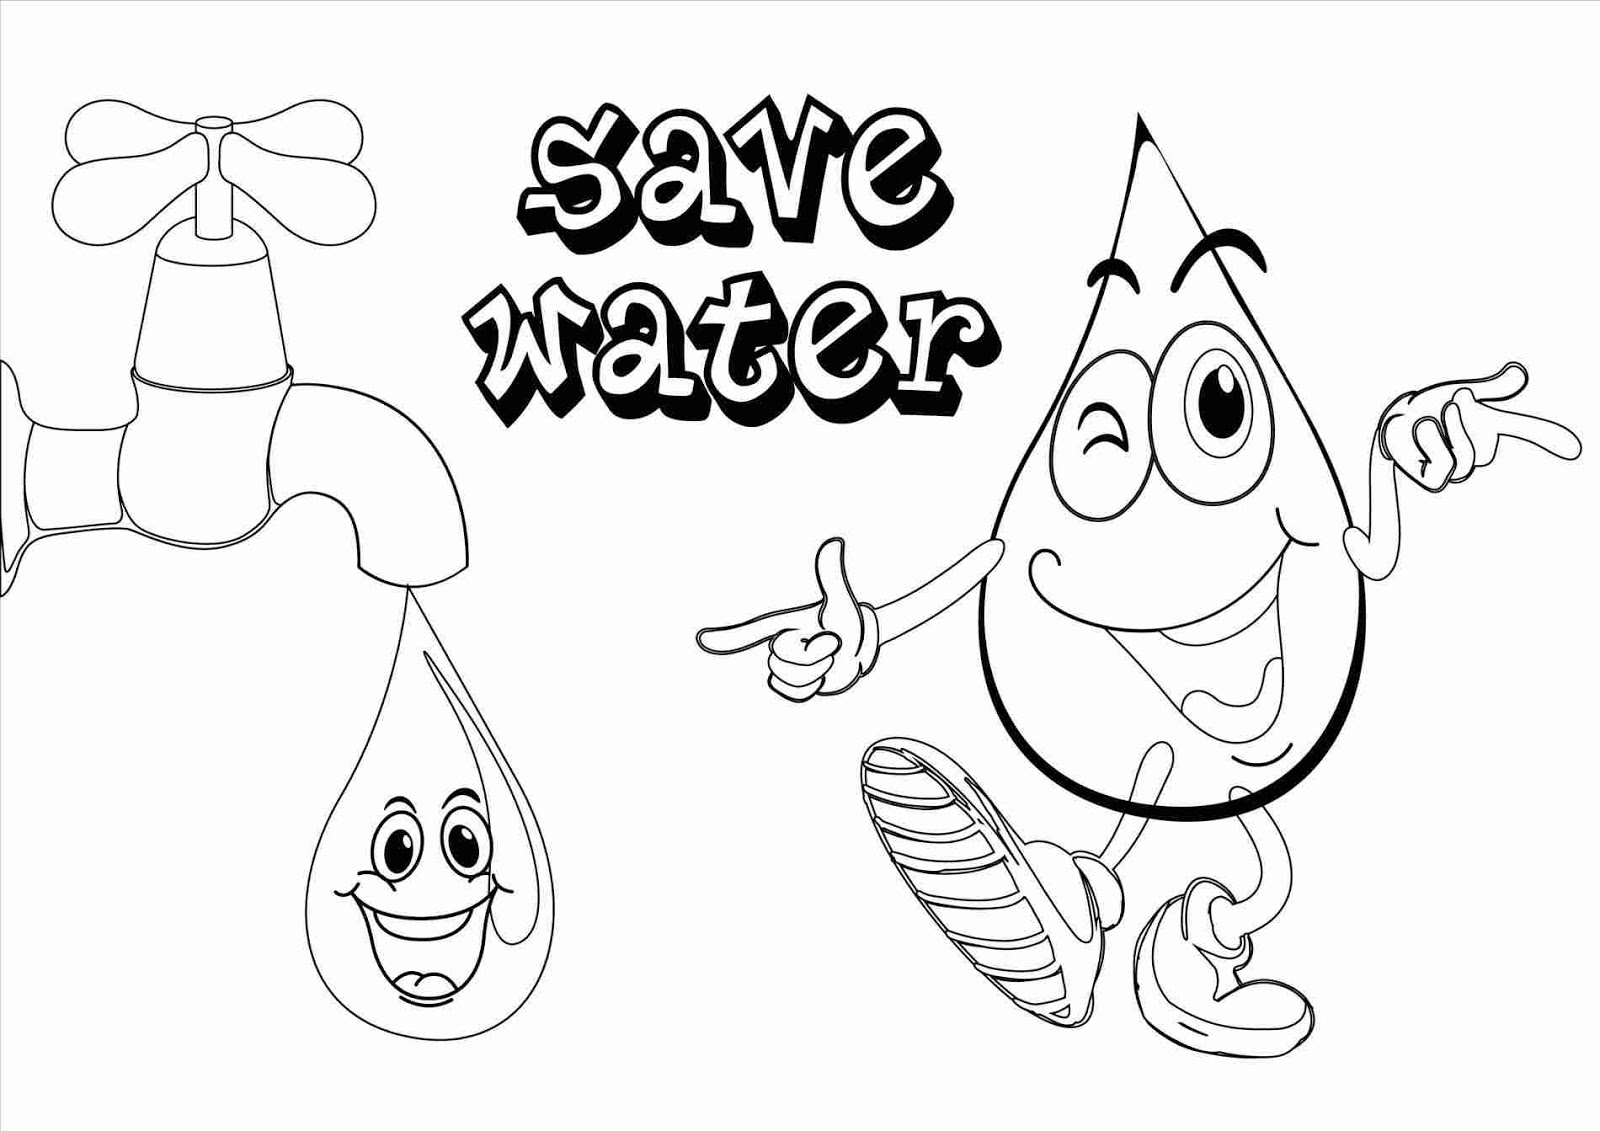 Save Water Poster for School {Class 7,8,12} Images Sketch